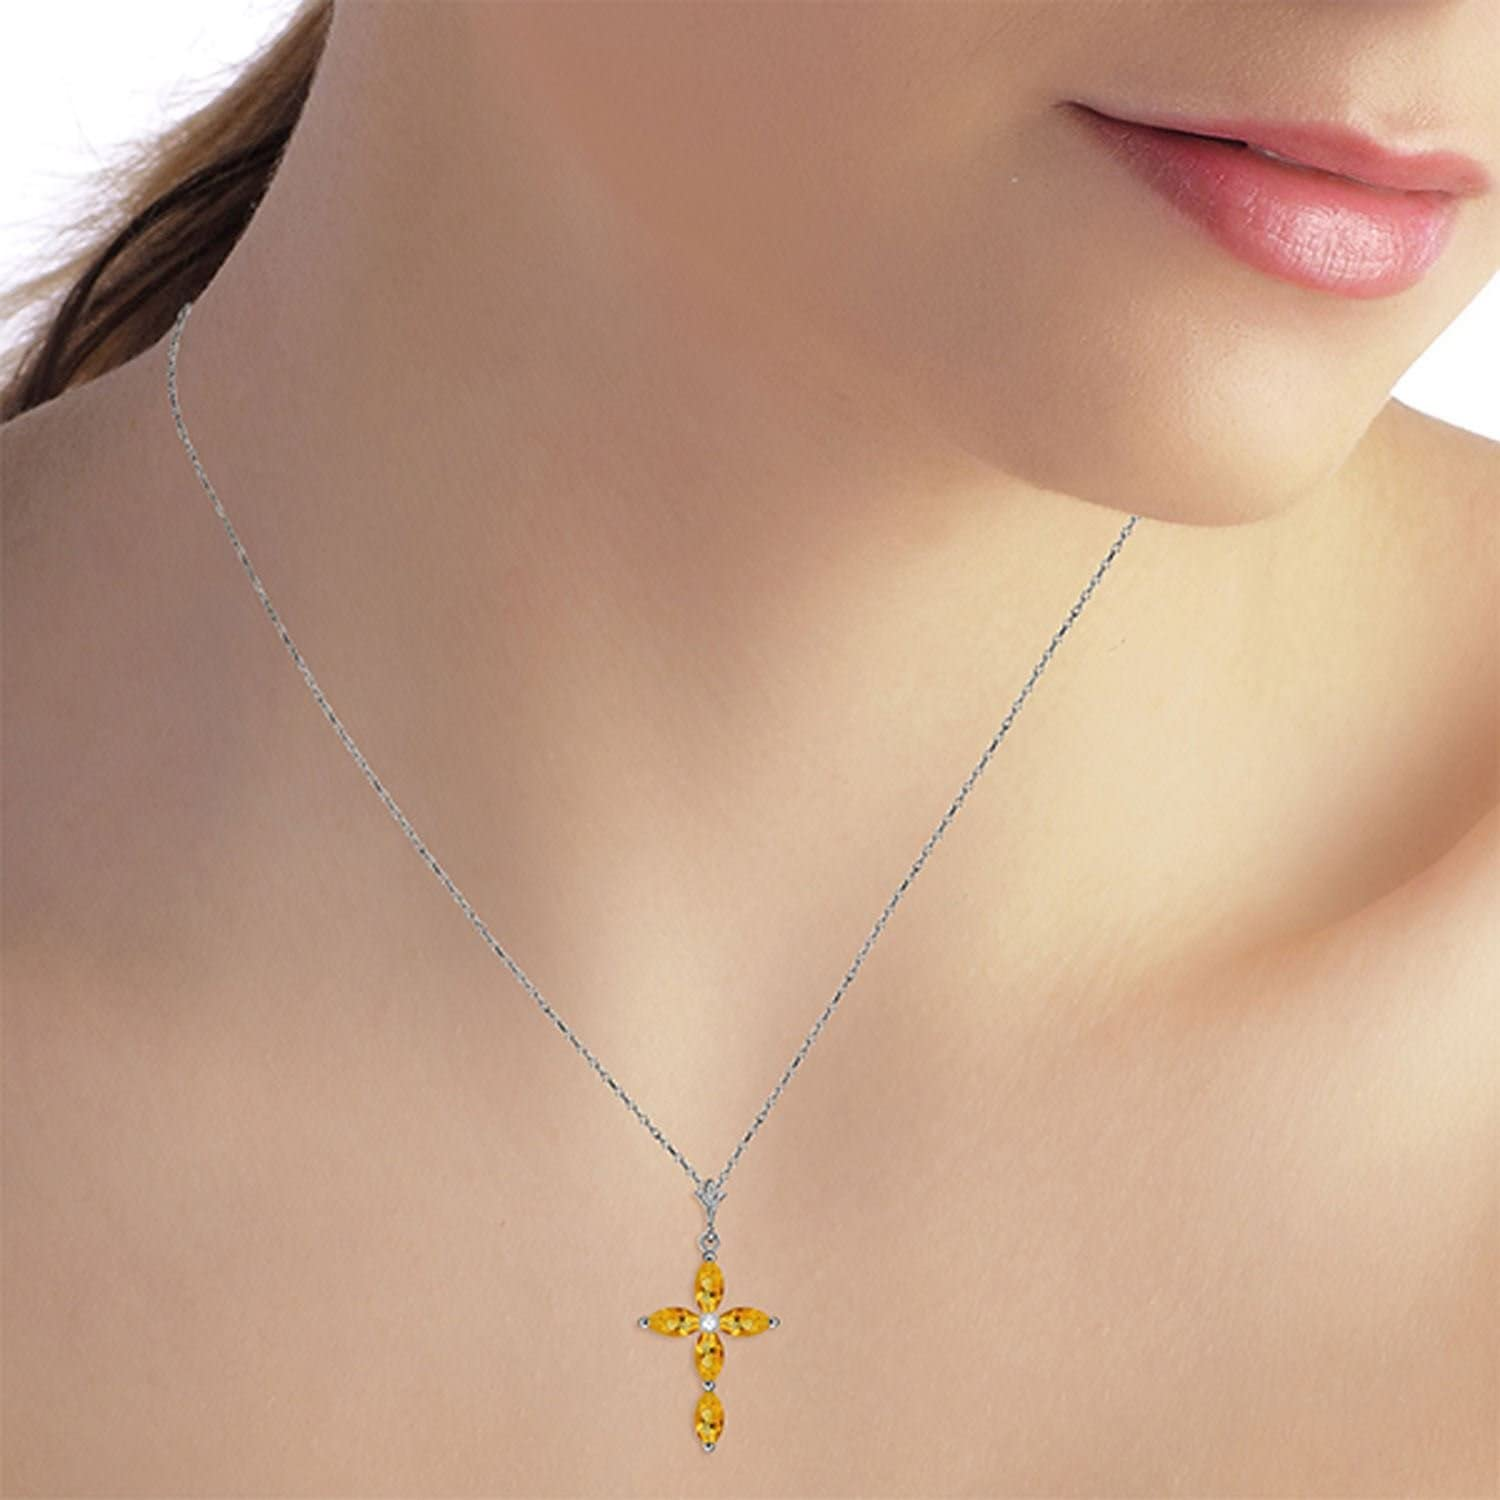 ALARRI 1.23 Carat 14K Solid White Gold Necklace Natural Diamond Citrine with 20 Inch Chain Length